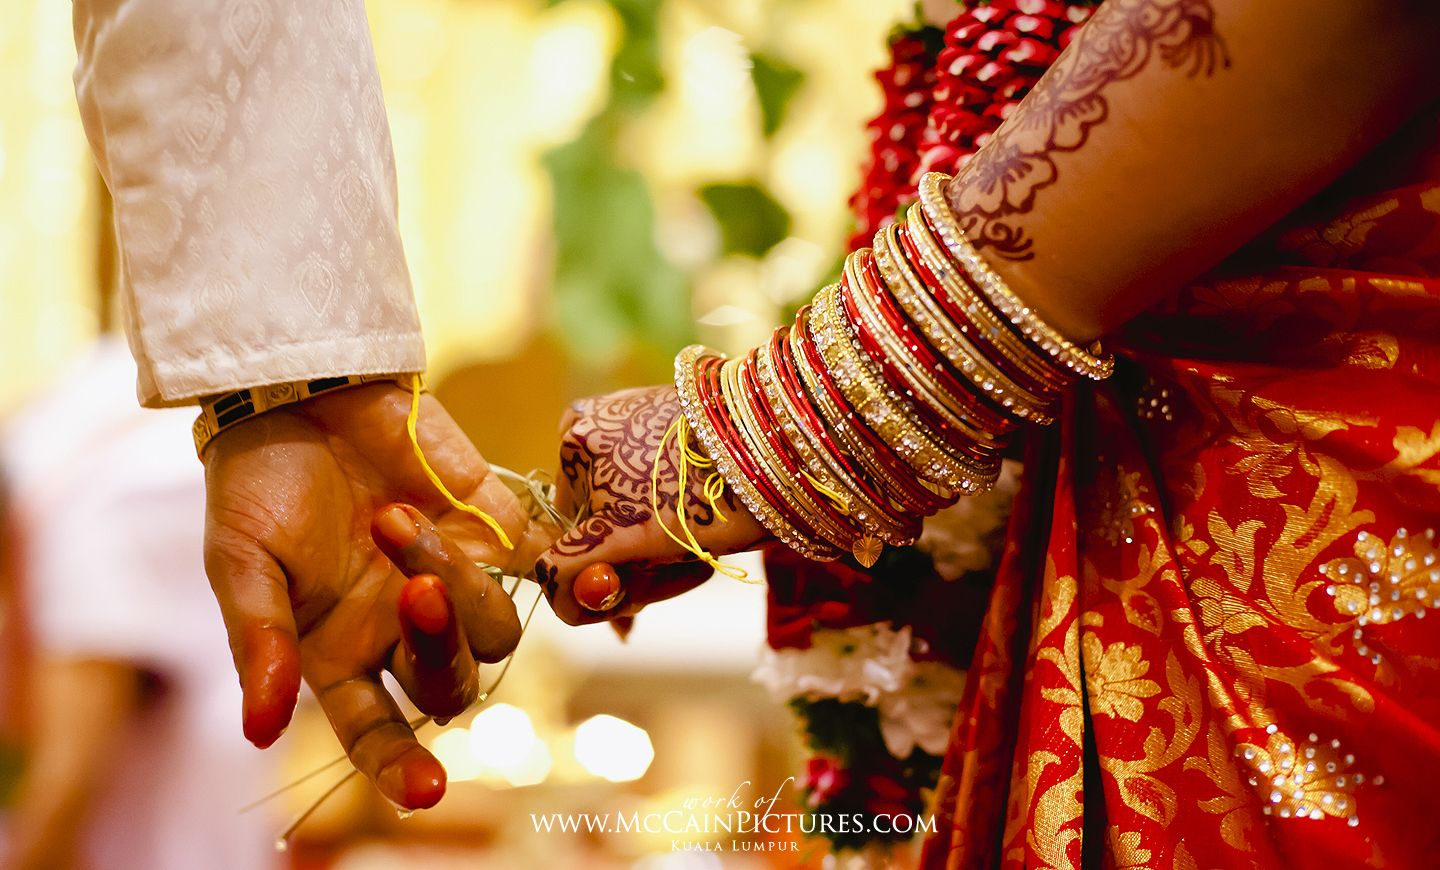 Indian Wedding Wallpapers   Data-src /full/1316663 - Indian Wedding Hands - HD Wallpaper